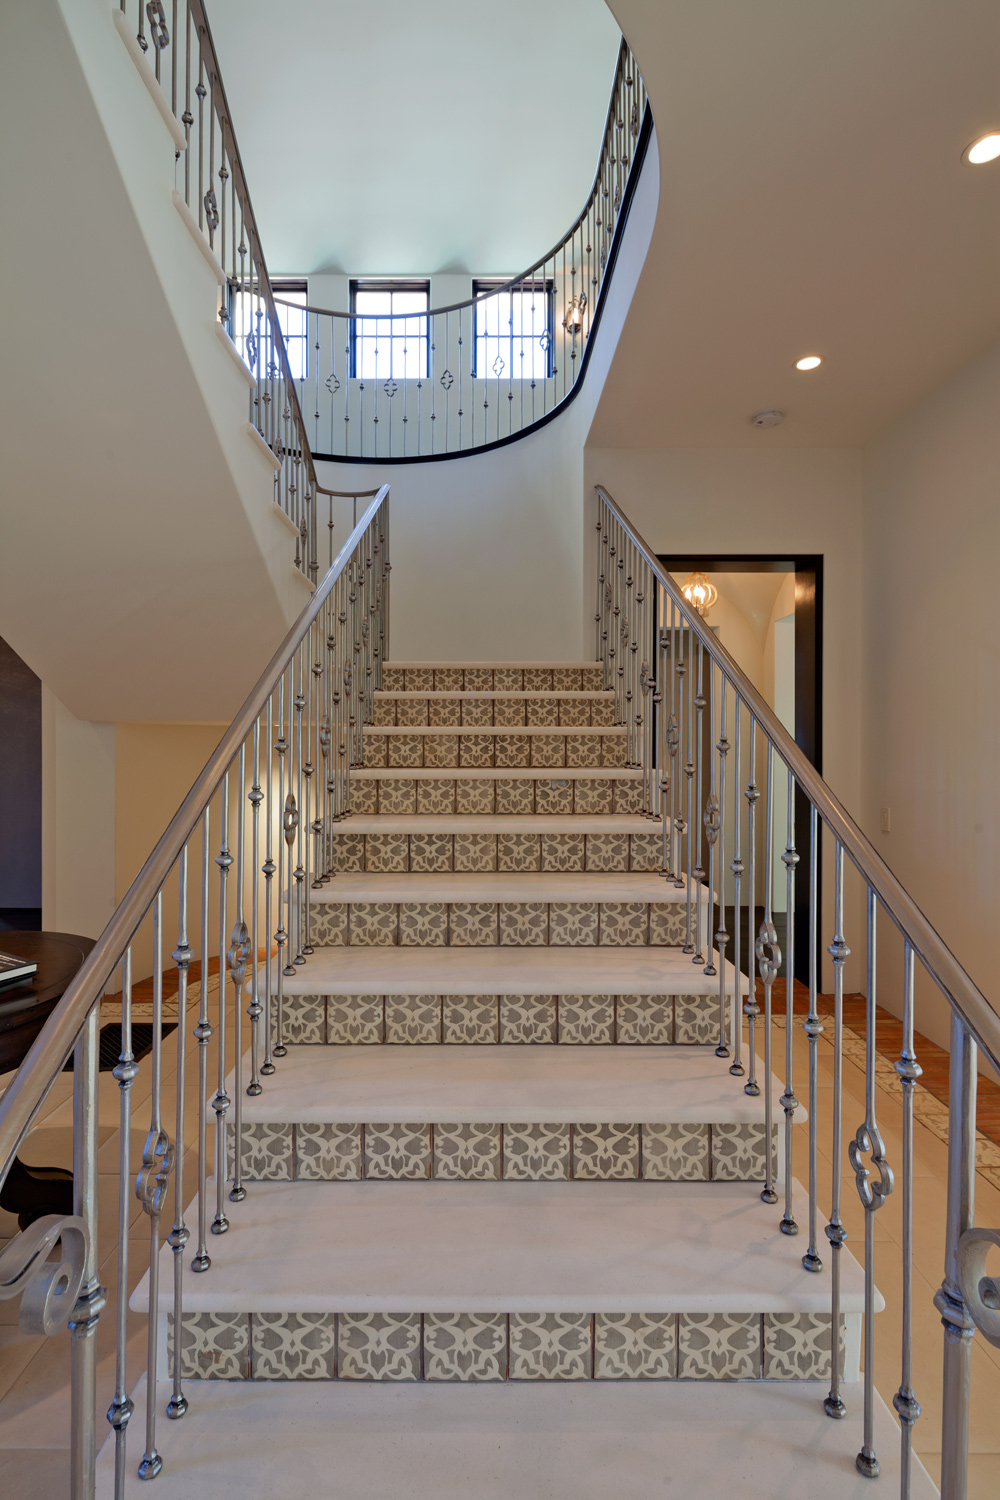 Staircase-Tile-Spanish-Contemporary-Premier-General-Contractors.jpg